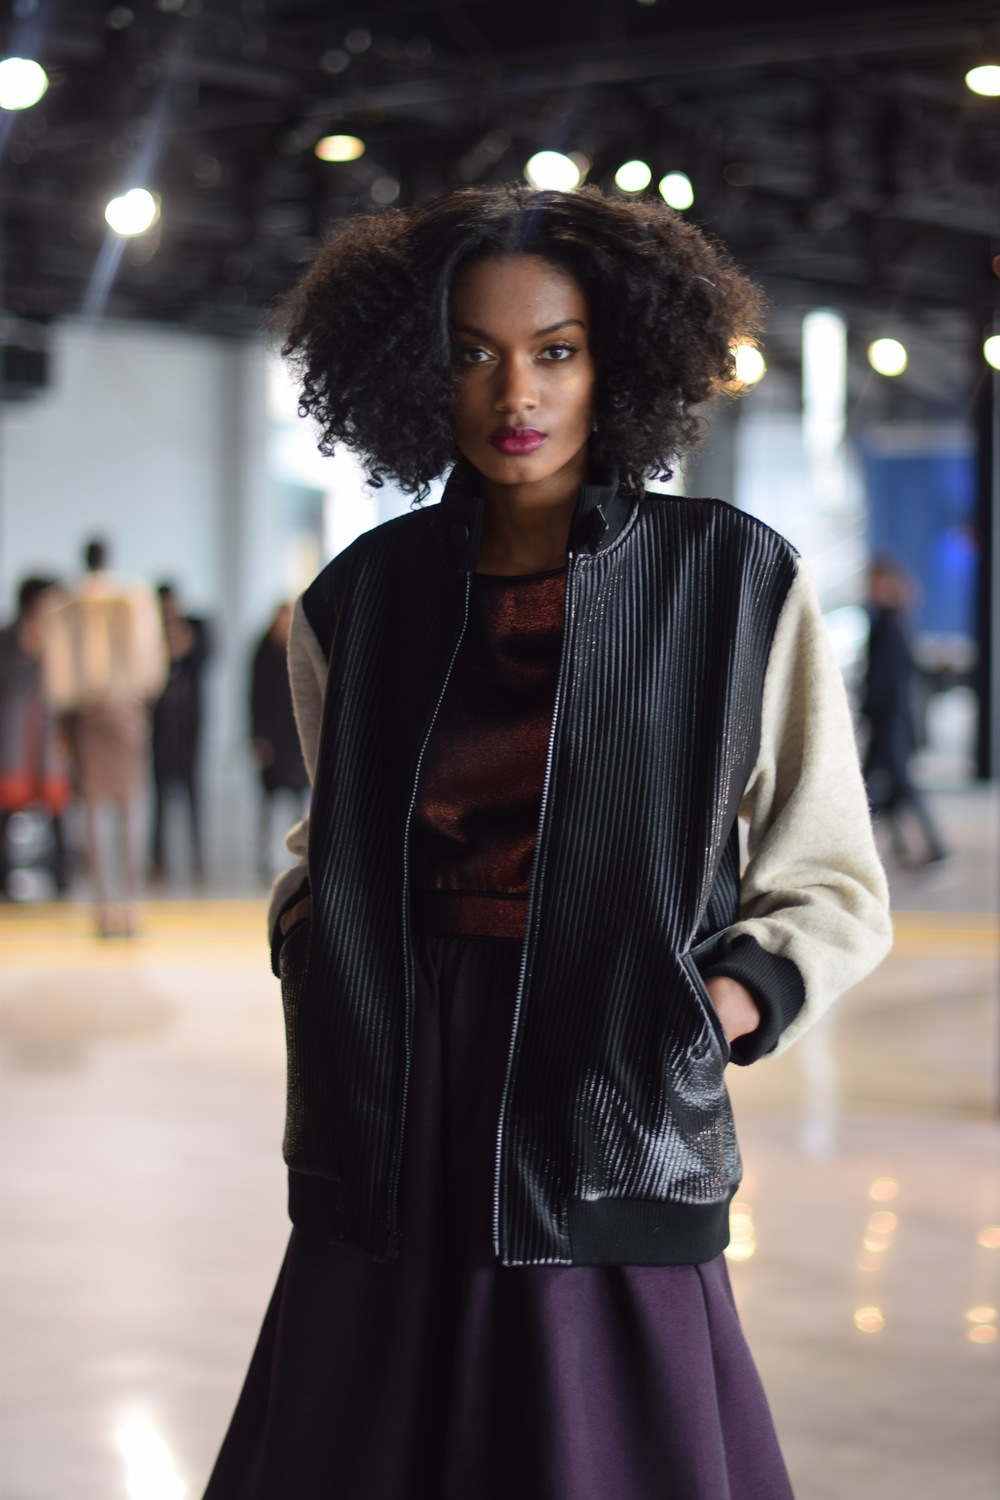 NYFW Saunder Fashion Presentation Fall:Winter 2016 Louboutins & Love Fashion Blog Esther Santer NYC Street Style Runway Models Collection Hair Beauty Inspo Front Row Press Event Coverage Photos Details Dress Gown Beautiful Trends Pretty Shop Gorgeous.jpg